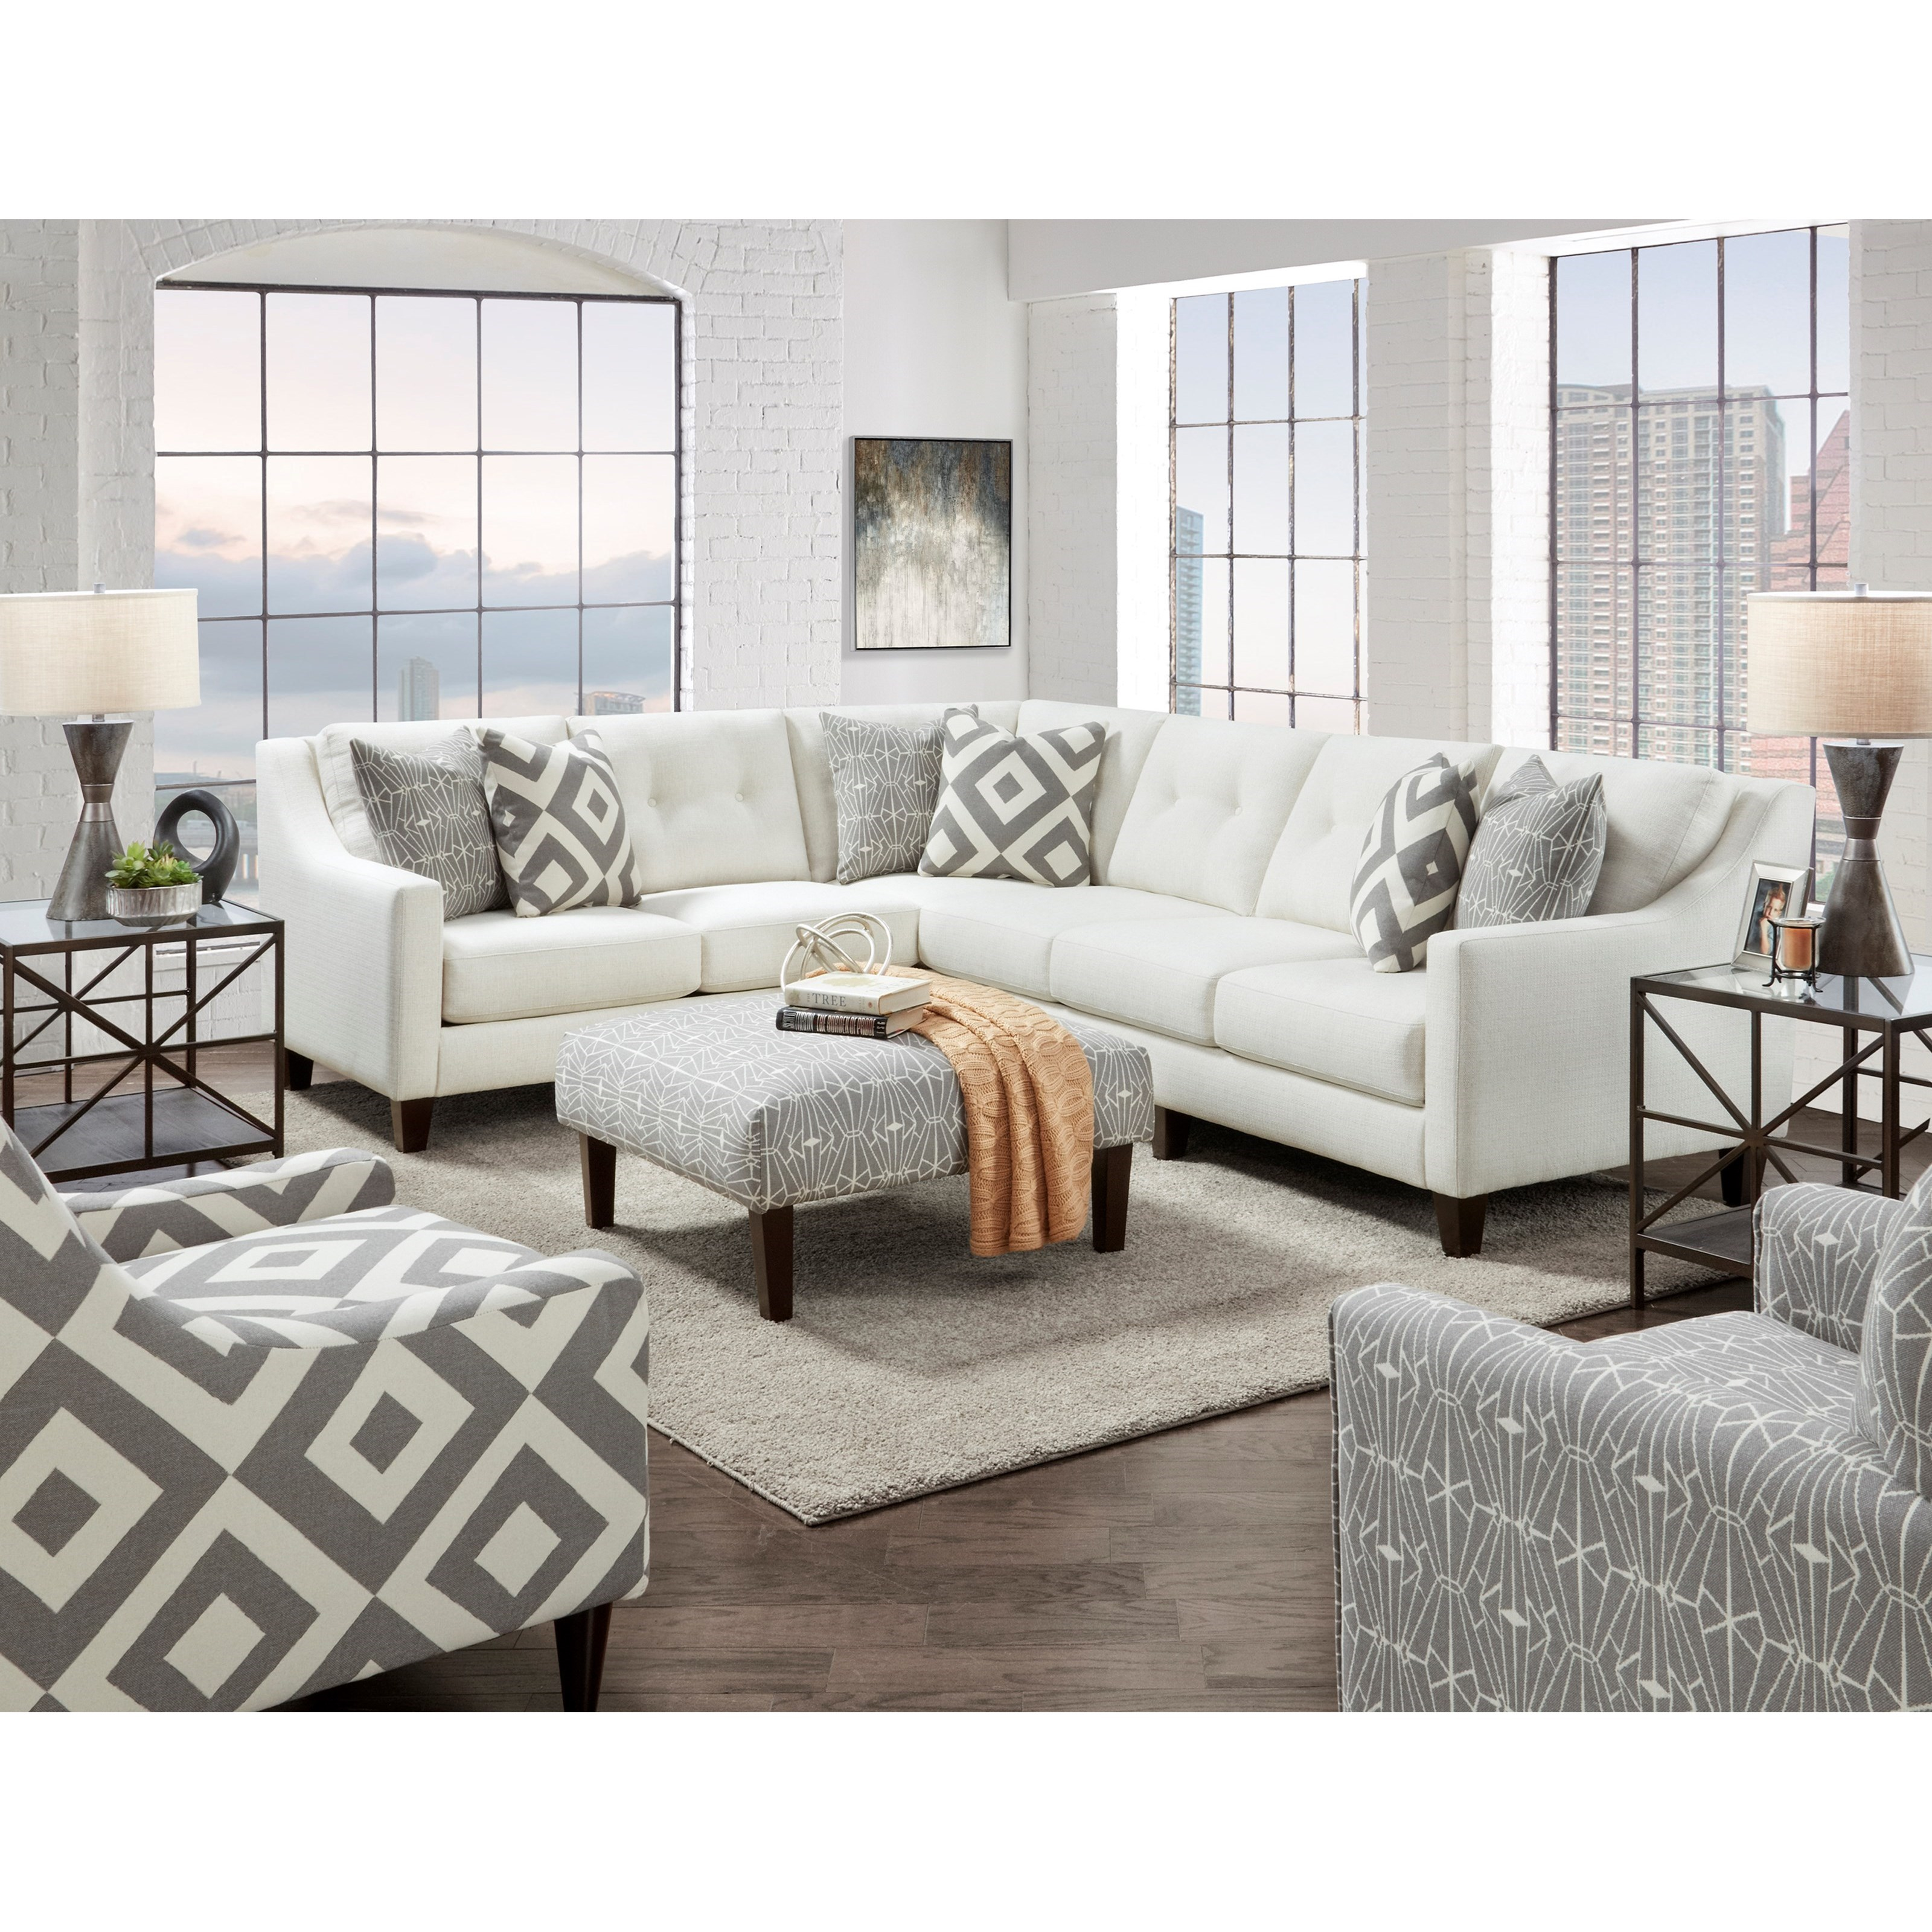 3280 Living Room Group by FN at Lindy's Furniture Company